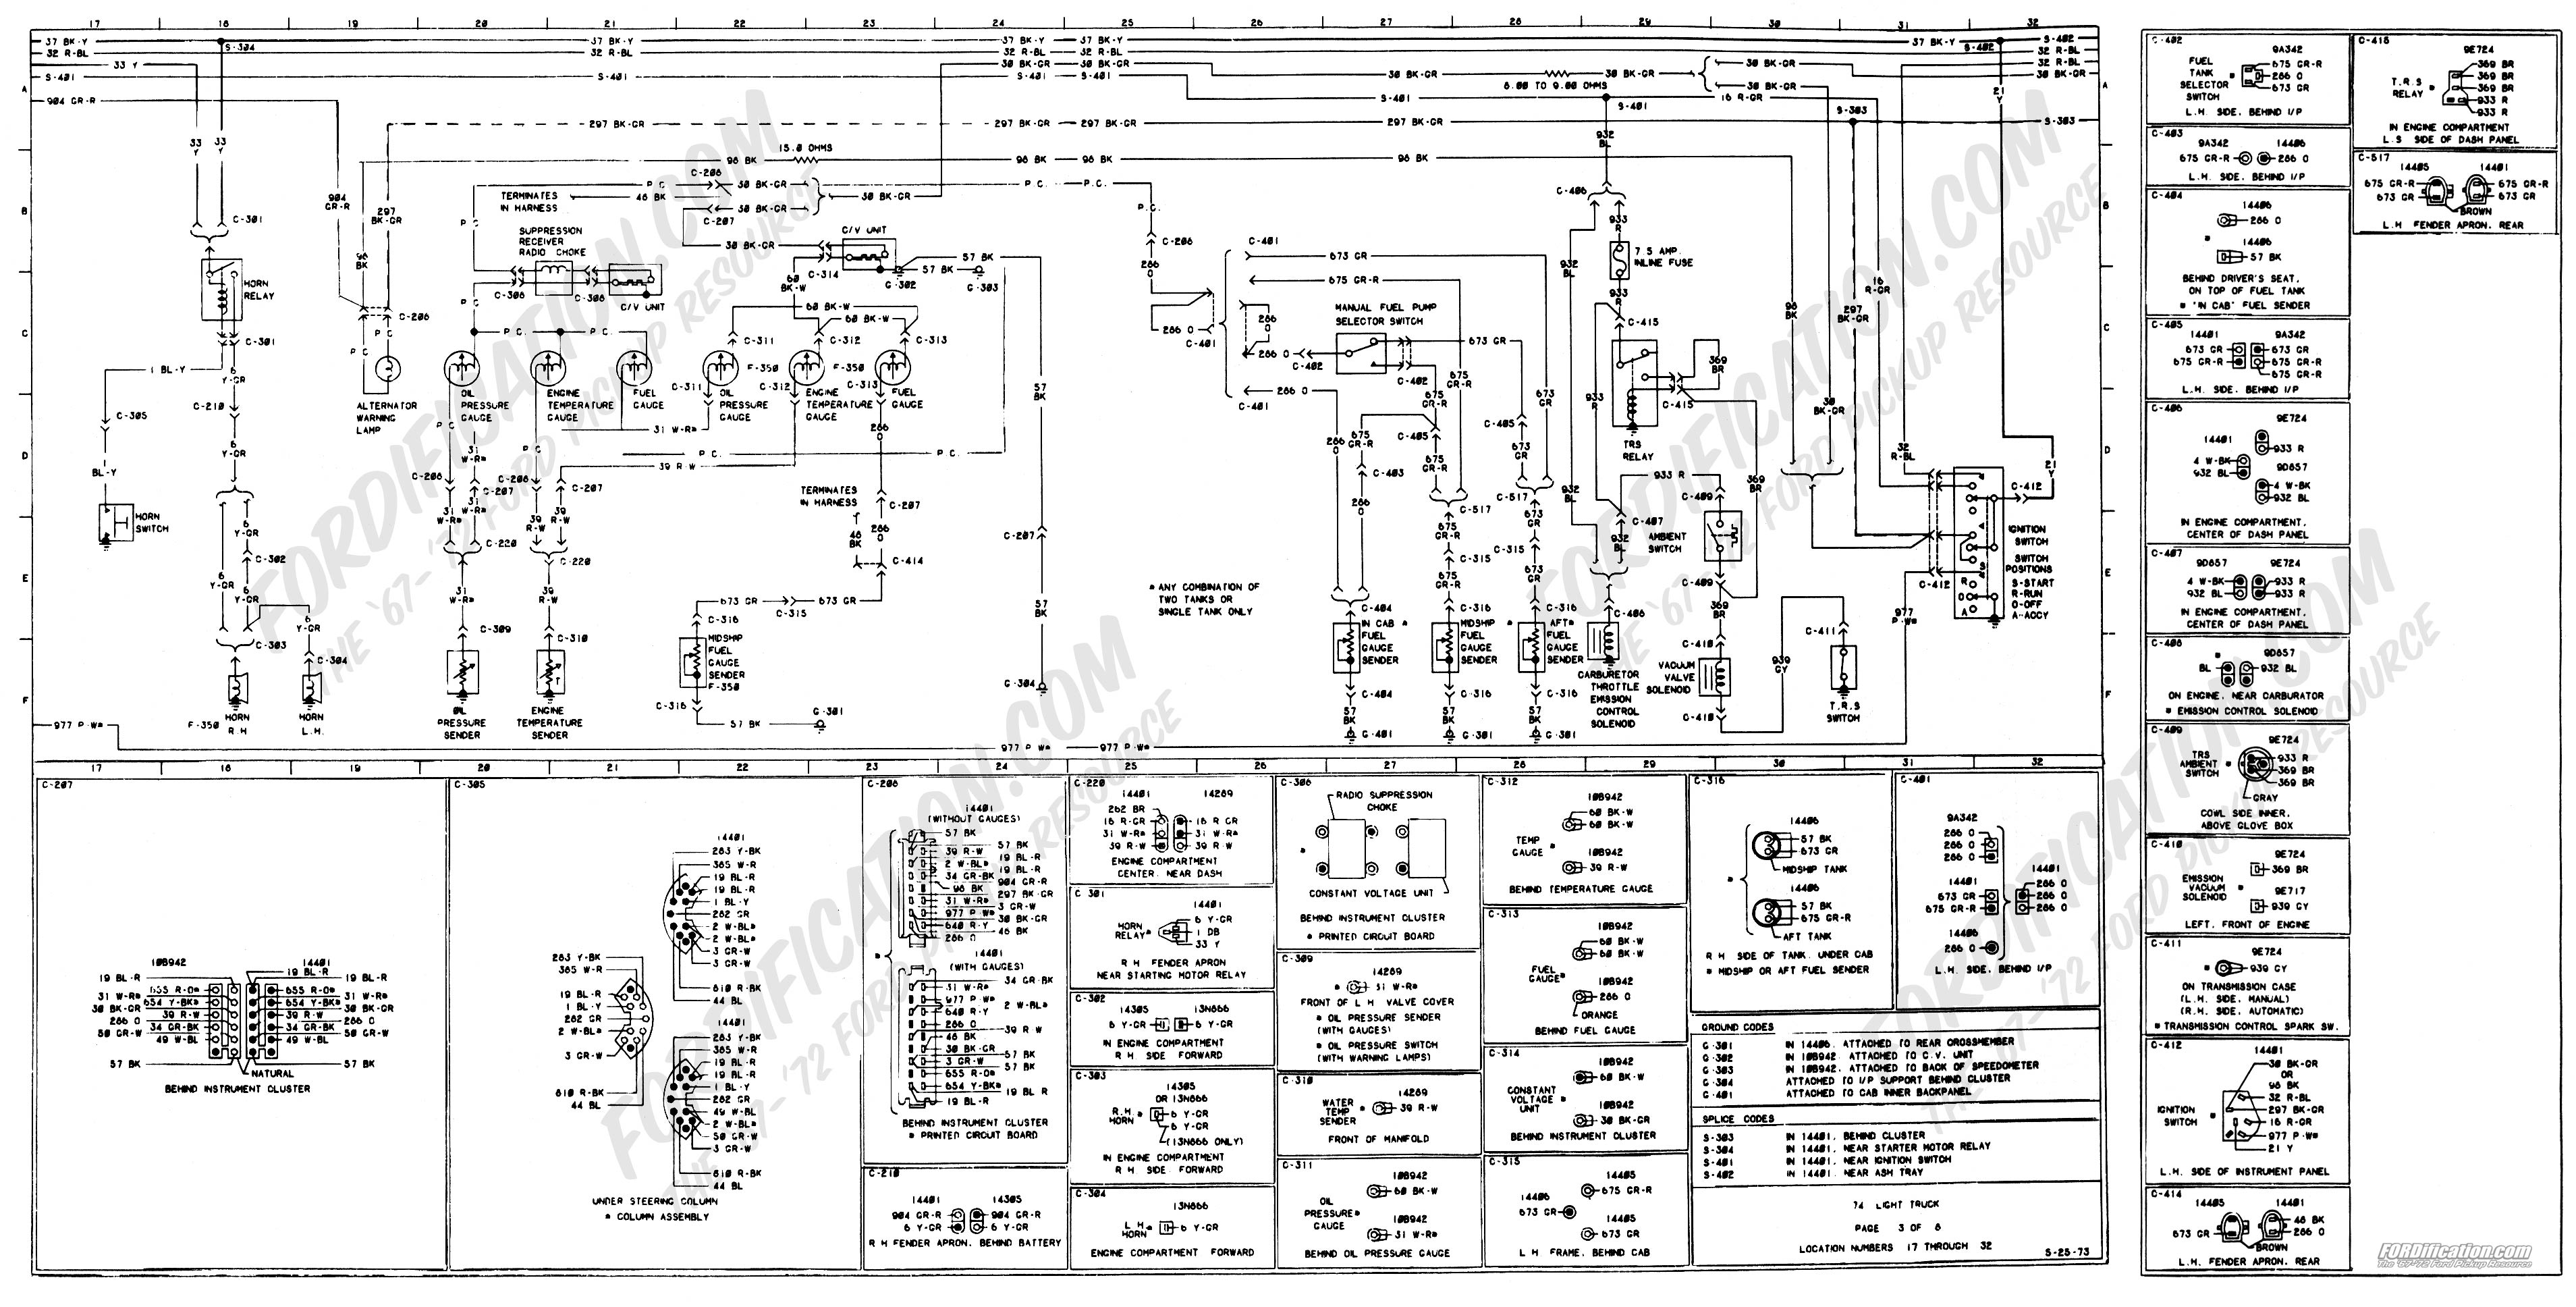 1986 Ford F 250 Fuse Box Wiring Library. 1985 Ford F 250 Fuse Box Diagram Schematic Diagrams Rh Ogmconsulting Co 1986. Ford. 1985 Ford F 150 Fuse Box Diagrams At Scoala.co